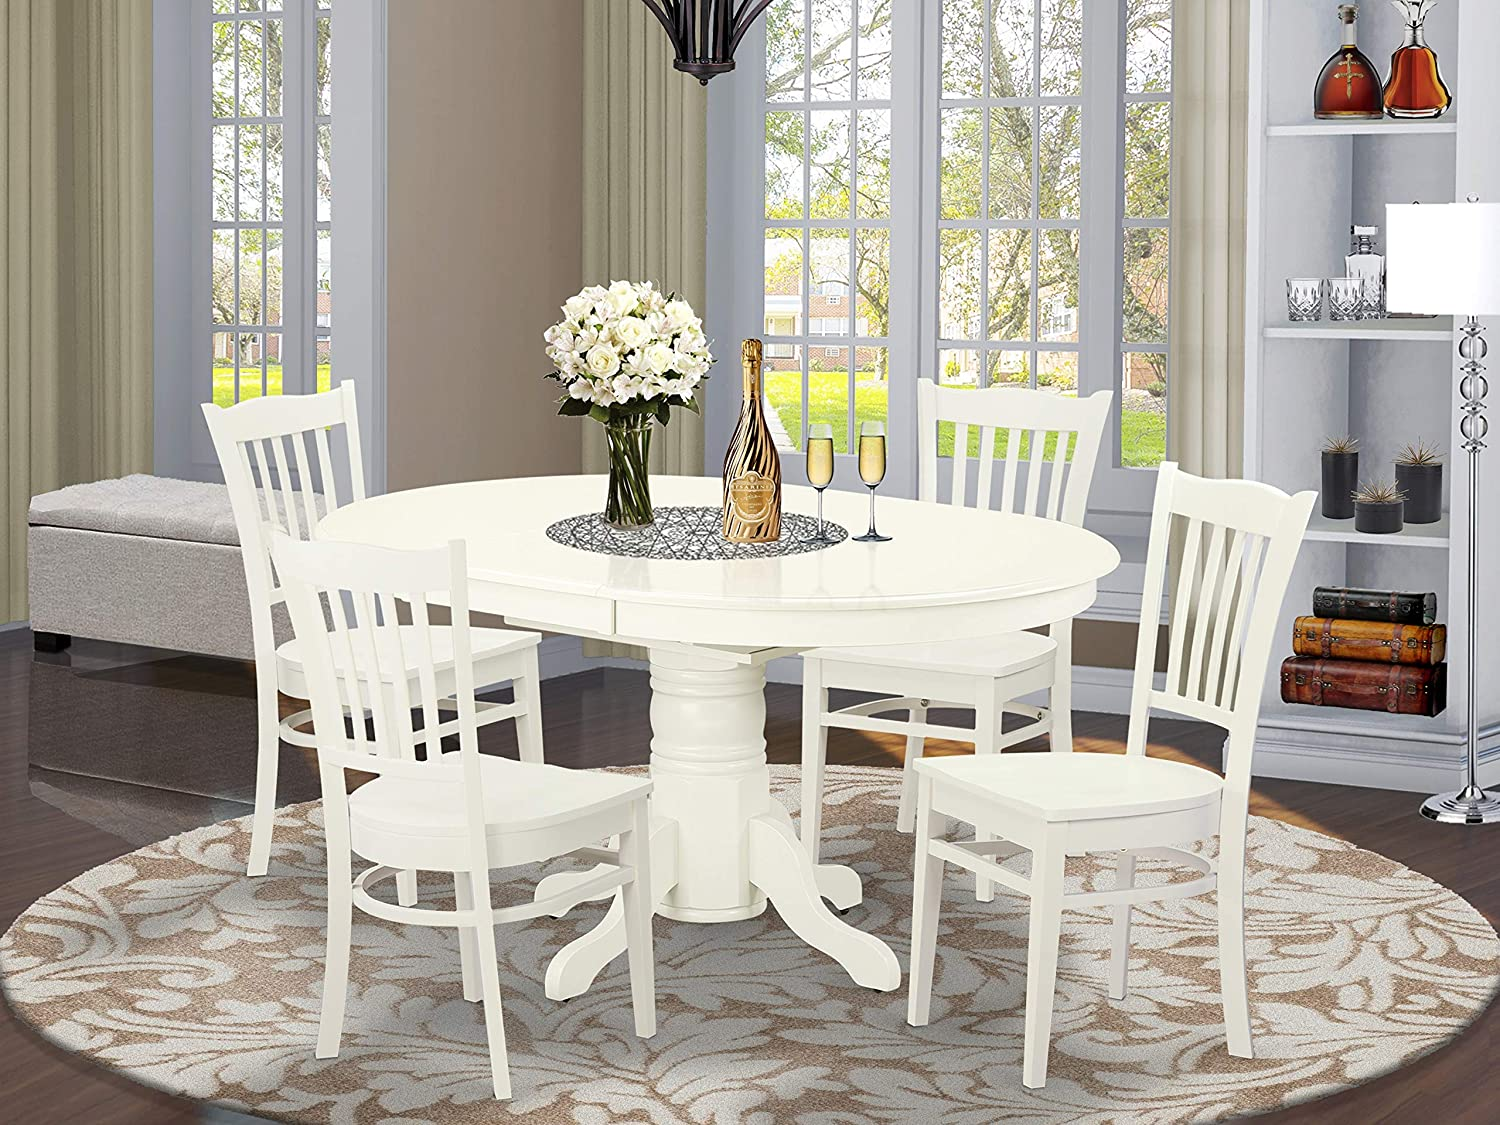 East West Furniture Dinette set 9 Wonderful wooden dining chairs   A  Attractive pedestal dining table  Linen White Color Wooden Seat Linen White  ...